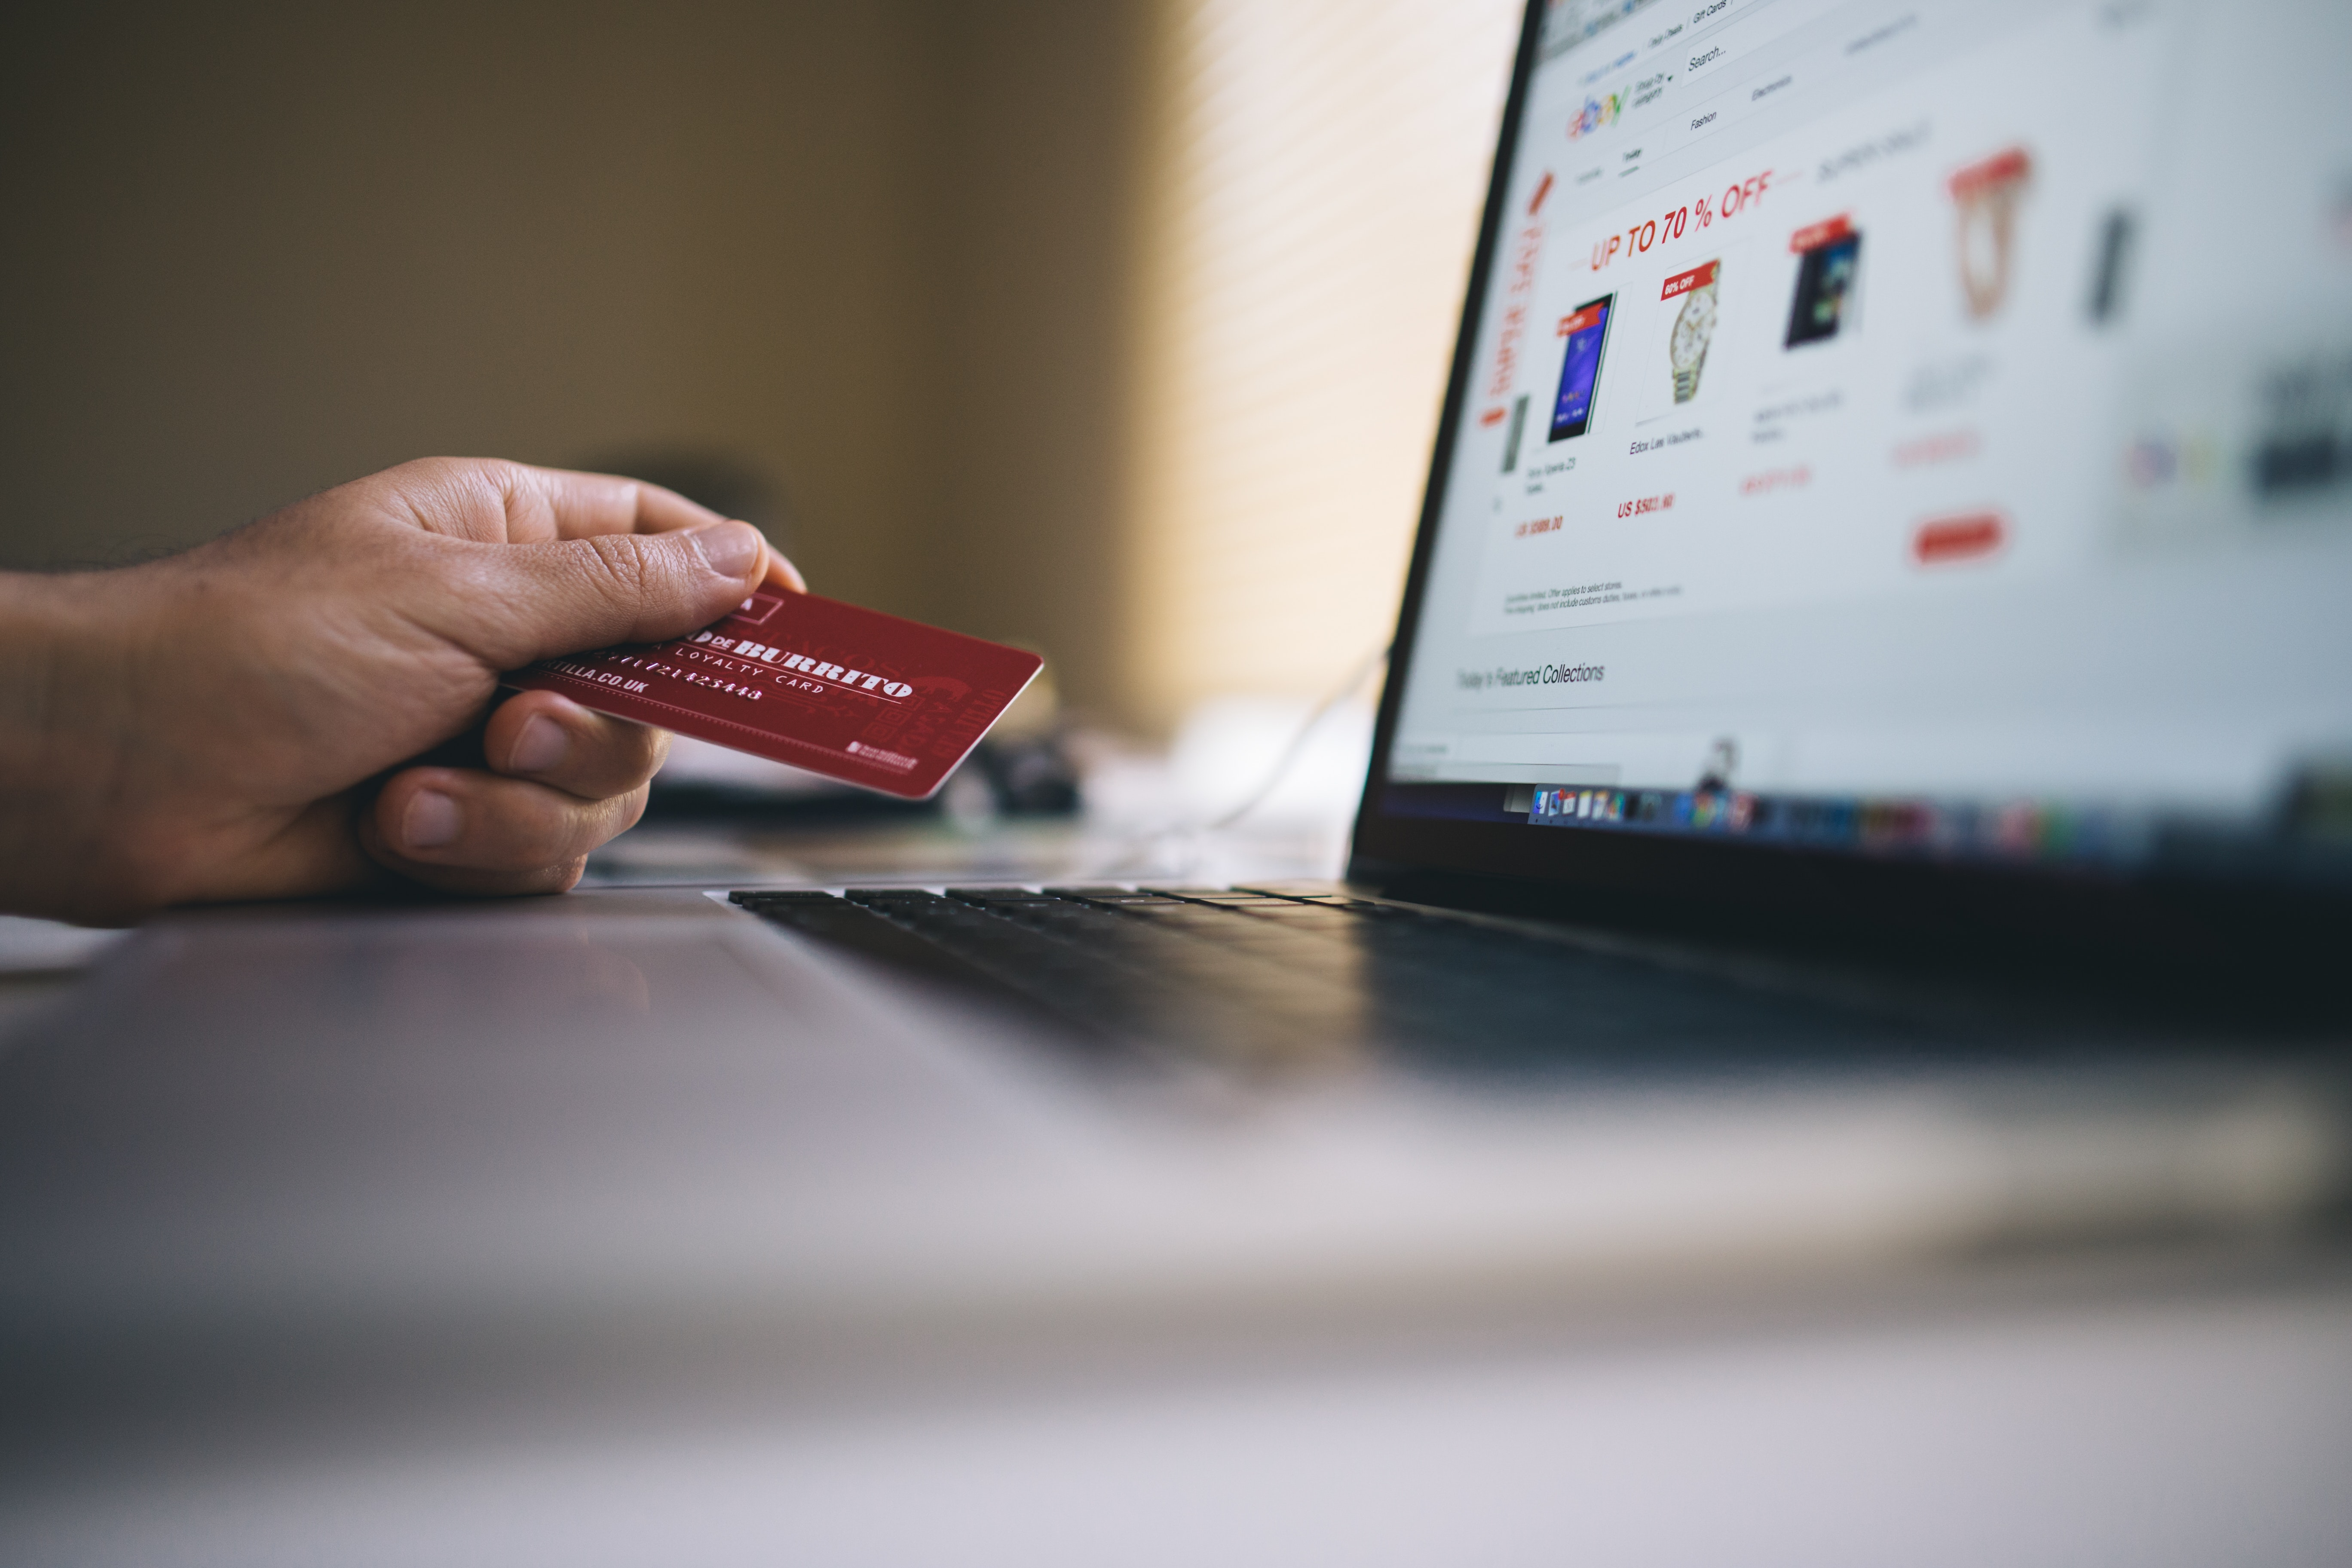 hand holding a credit card in front of a computer